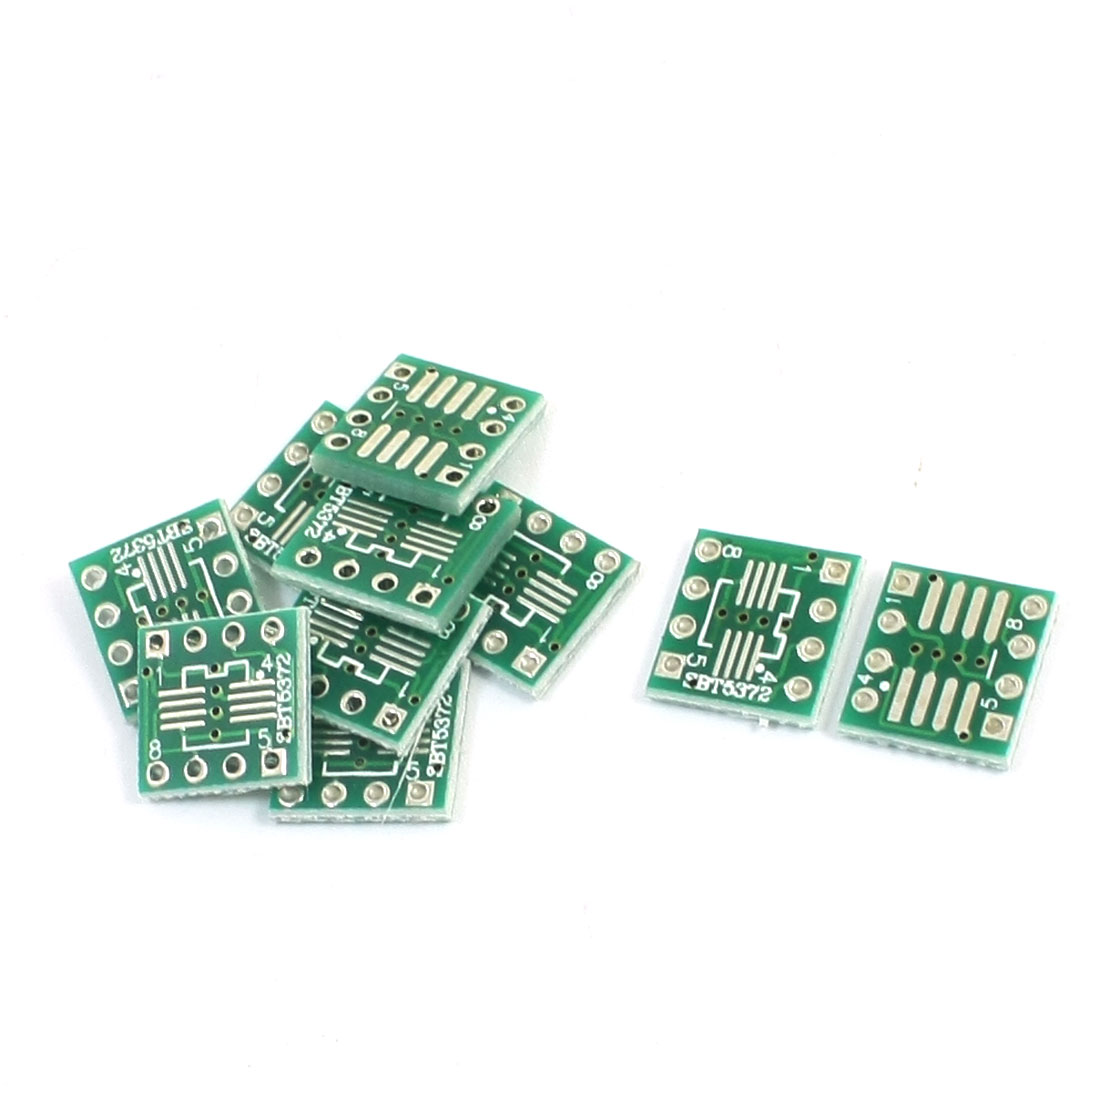 10 Pcs SOP8 0.5mm 1mm to DIP 8Pin 2.54mm Pitch Dual Sides PCB Adapter Converter PCB Board 11mm x 10mm